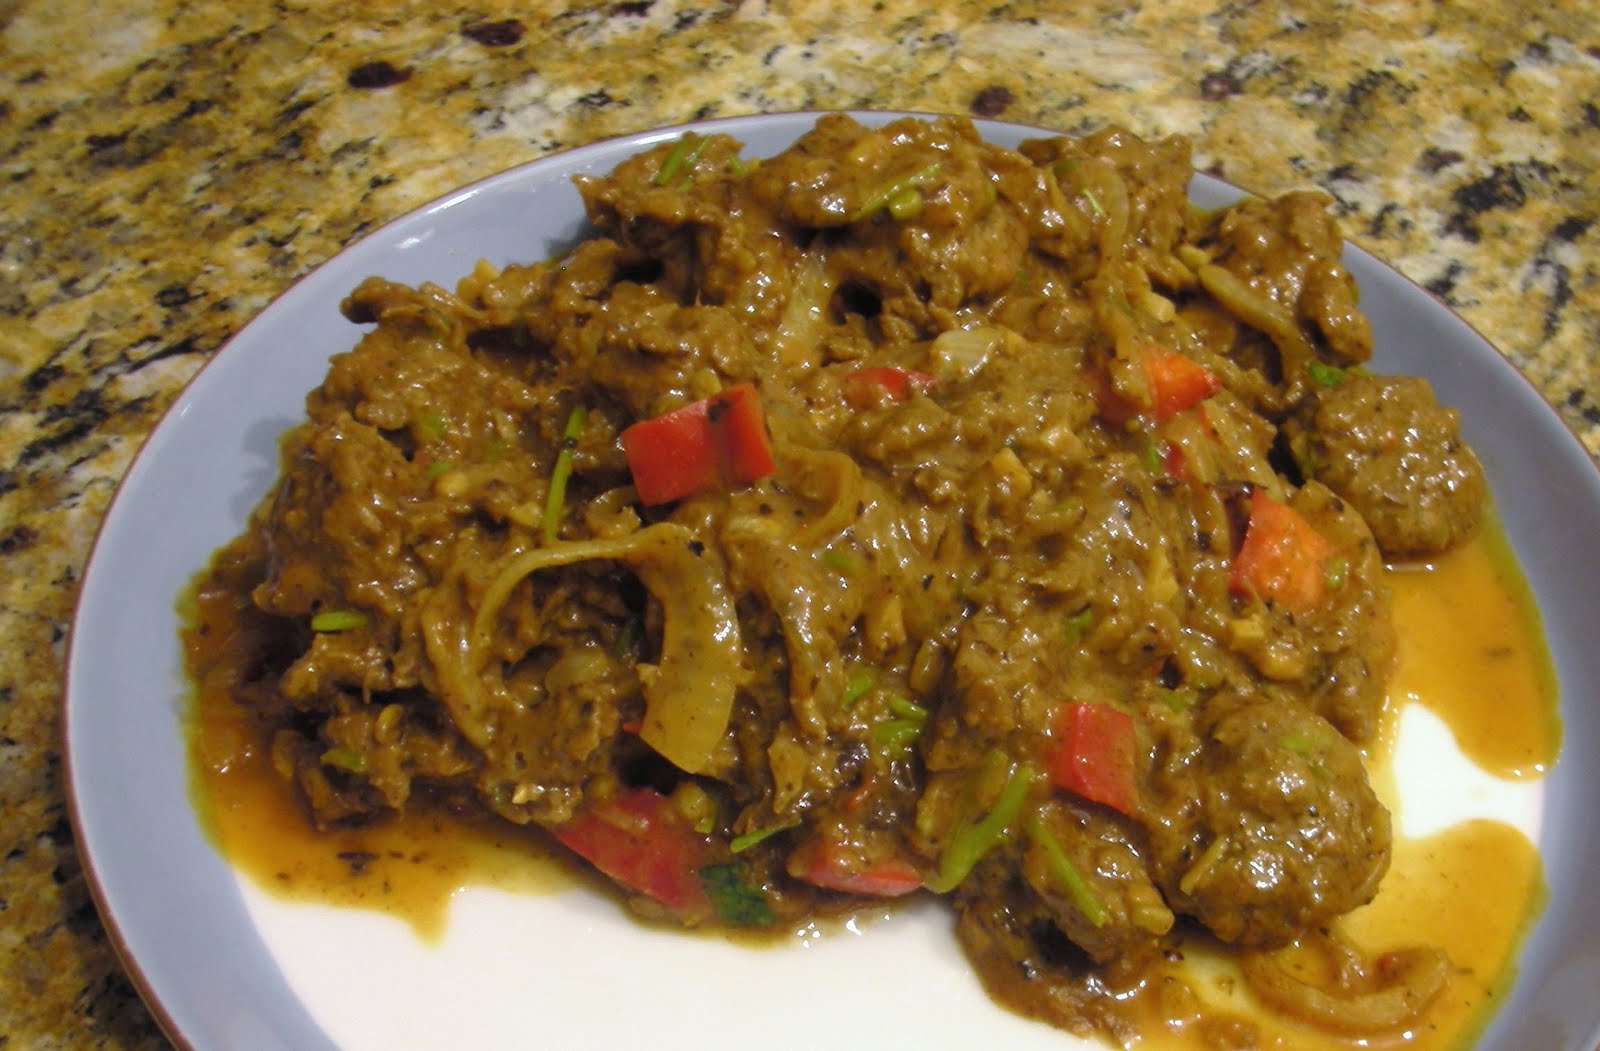 Everyday Vegan: 'Beef' Curry with Toasted Spices